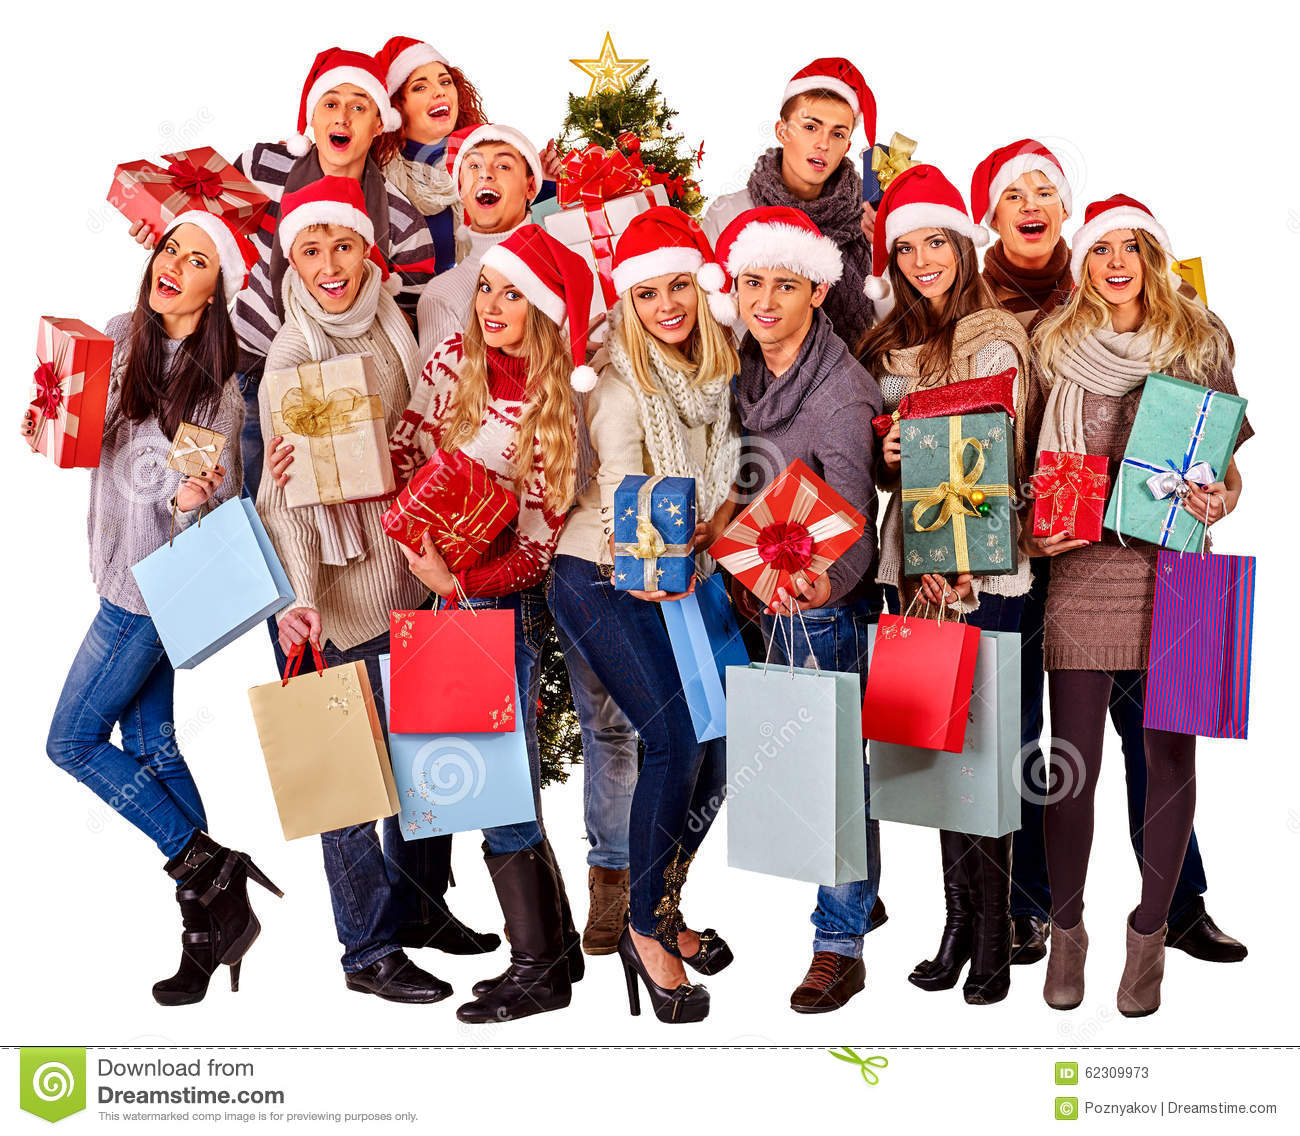 Group Games For Christmas Party: Corporate Christmas For Large Groups